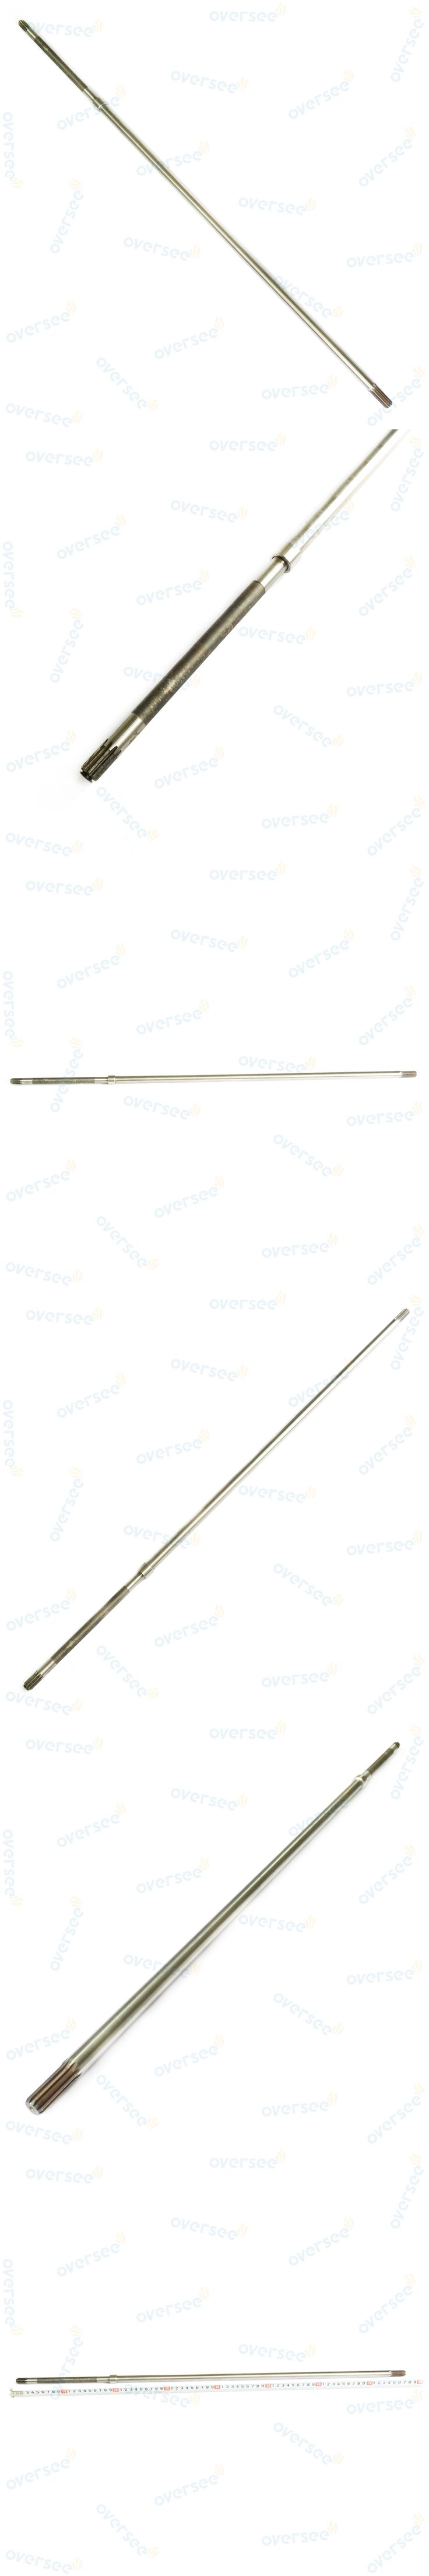 655-45501-10 (Long) DRIVE SHAFT For Yamaha Outboard Engine,Boat Motor Aftermarket Parts